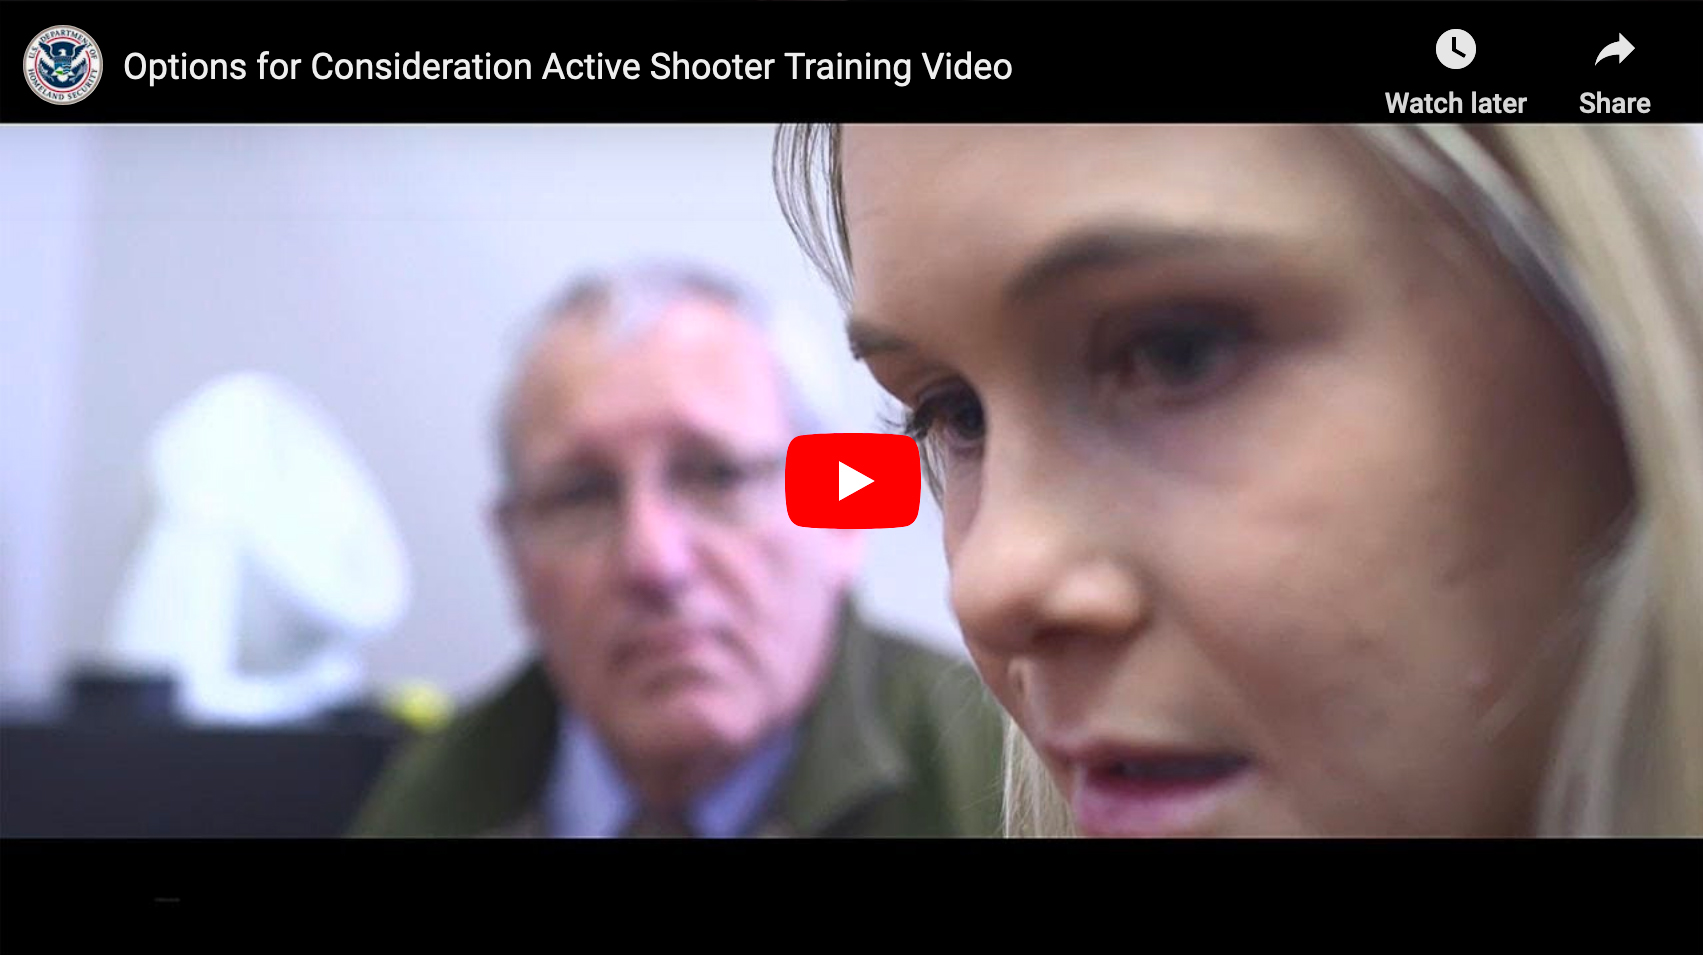 Click to view the Options for Consideration Active Shooter Training Video in YouTube